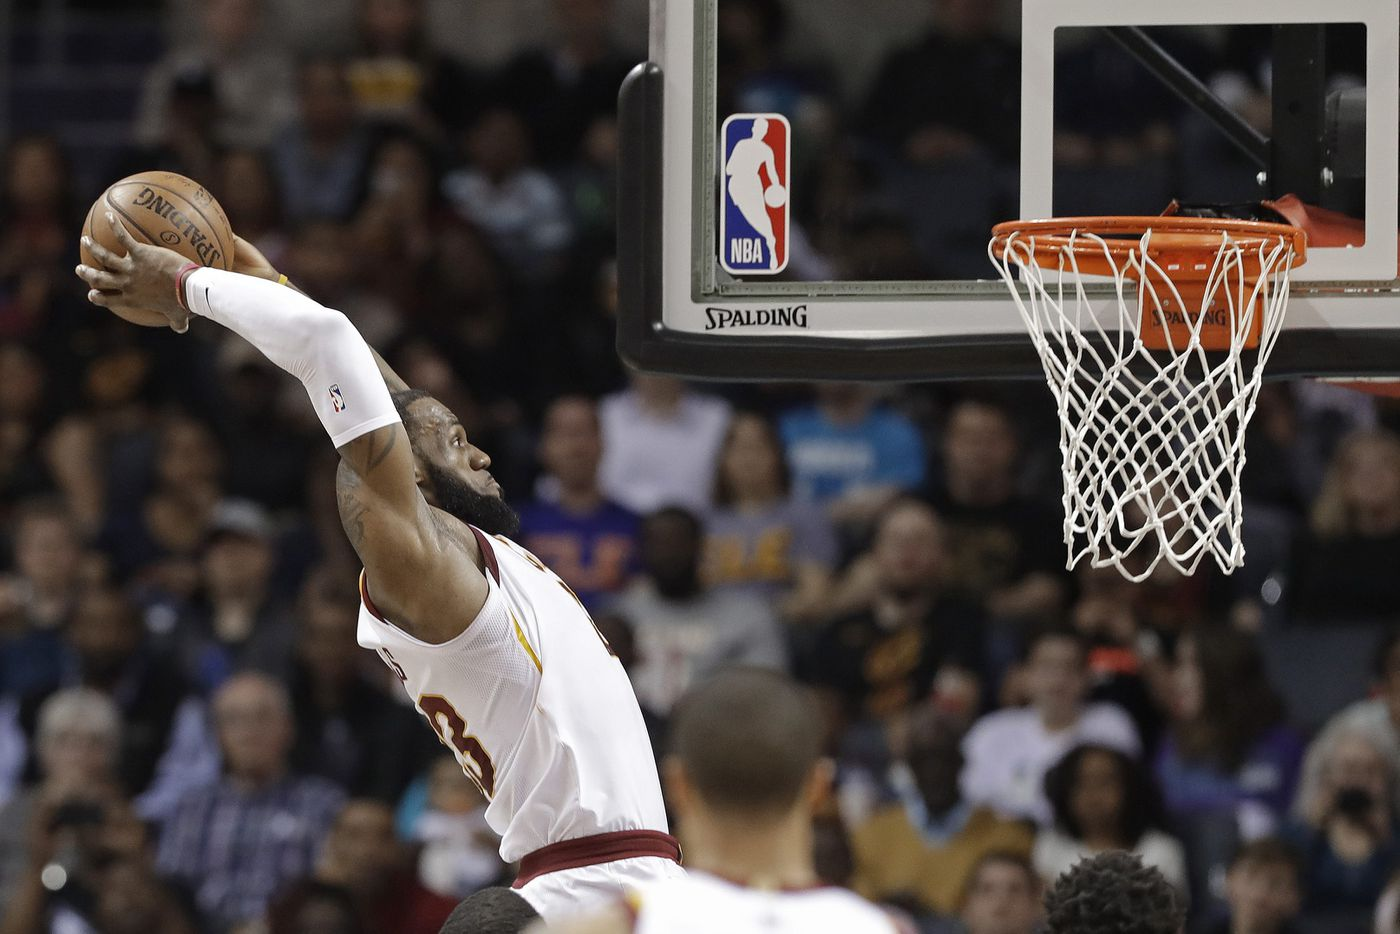 LeBron James opts out, becomes Sixers free agent target